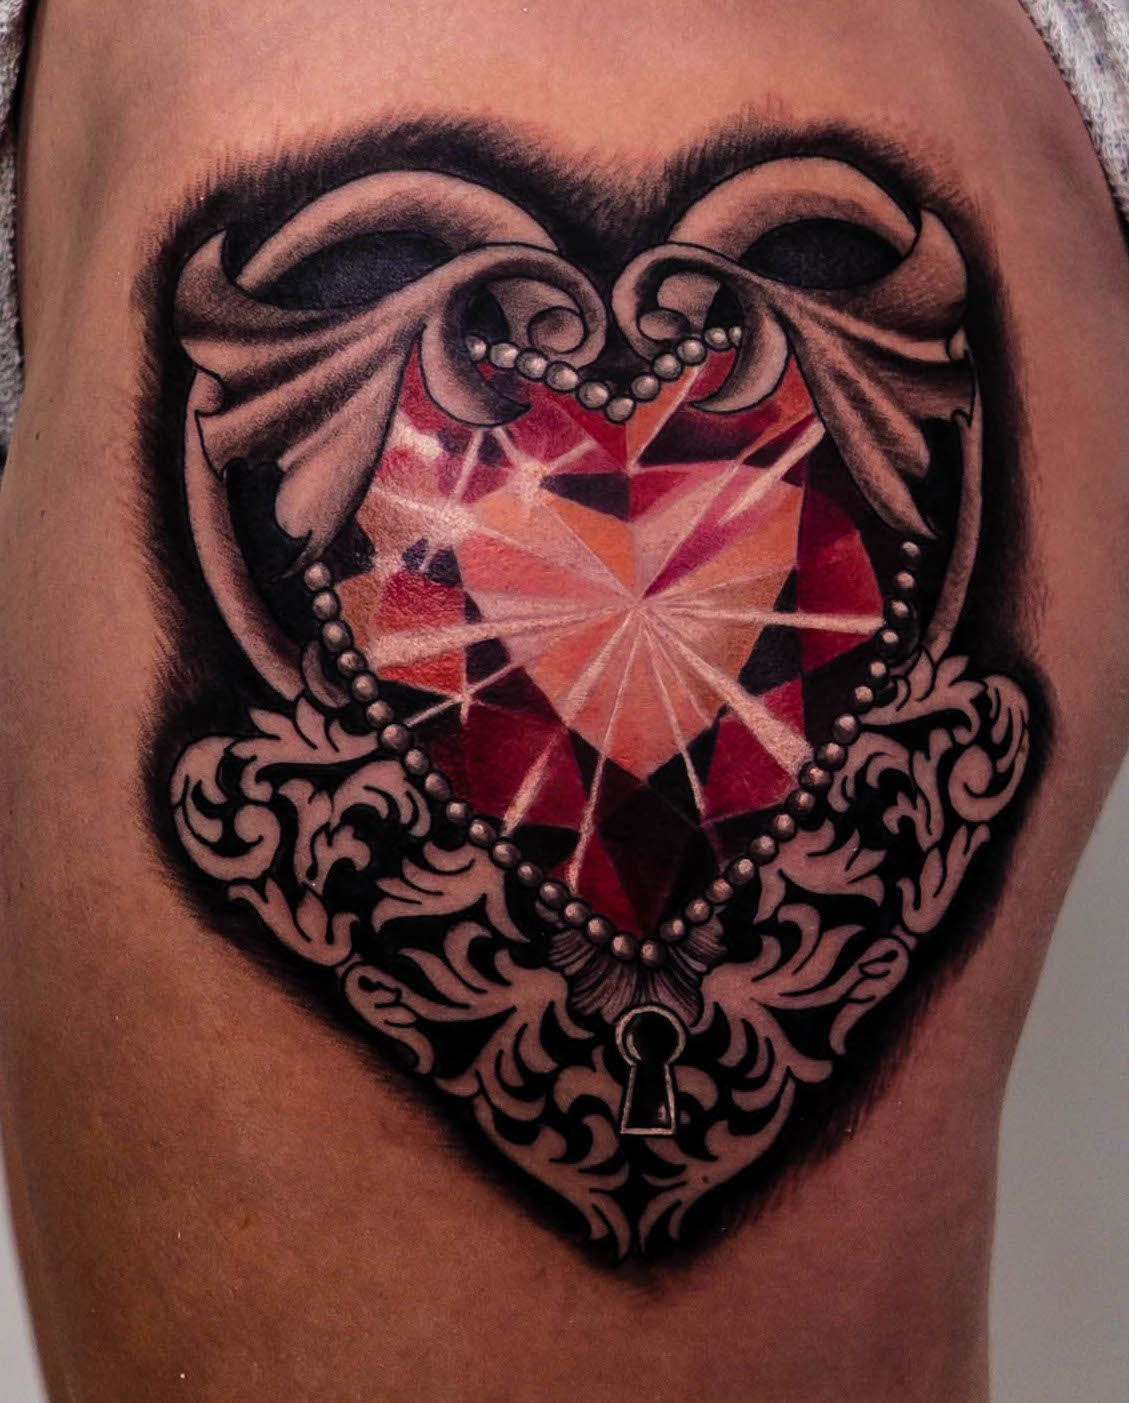 Pin by certified customs on tattoo ideas in 2021 tattoos